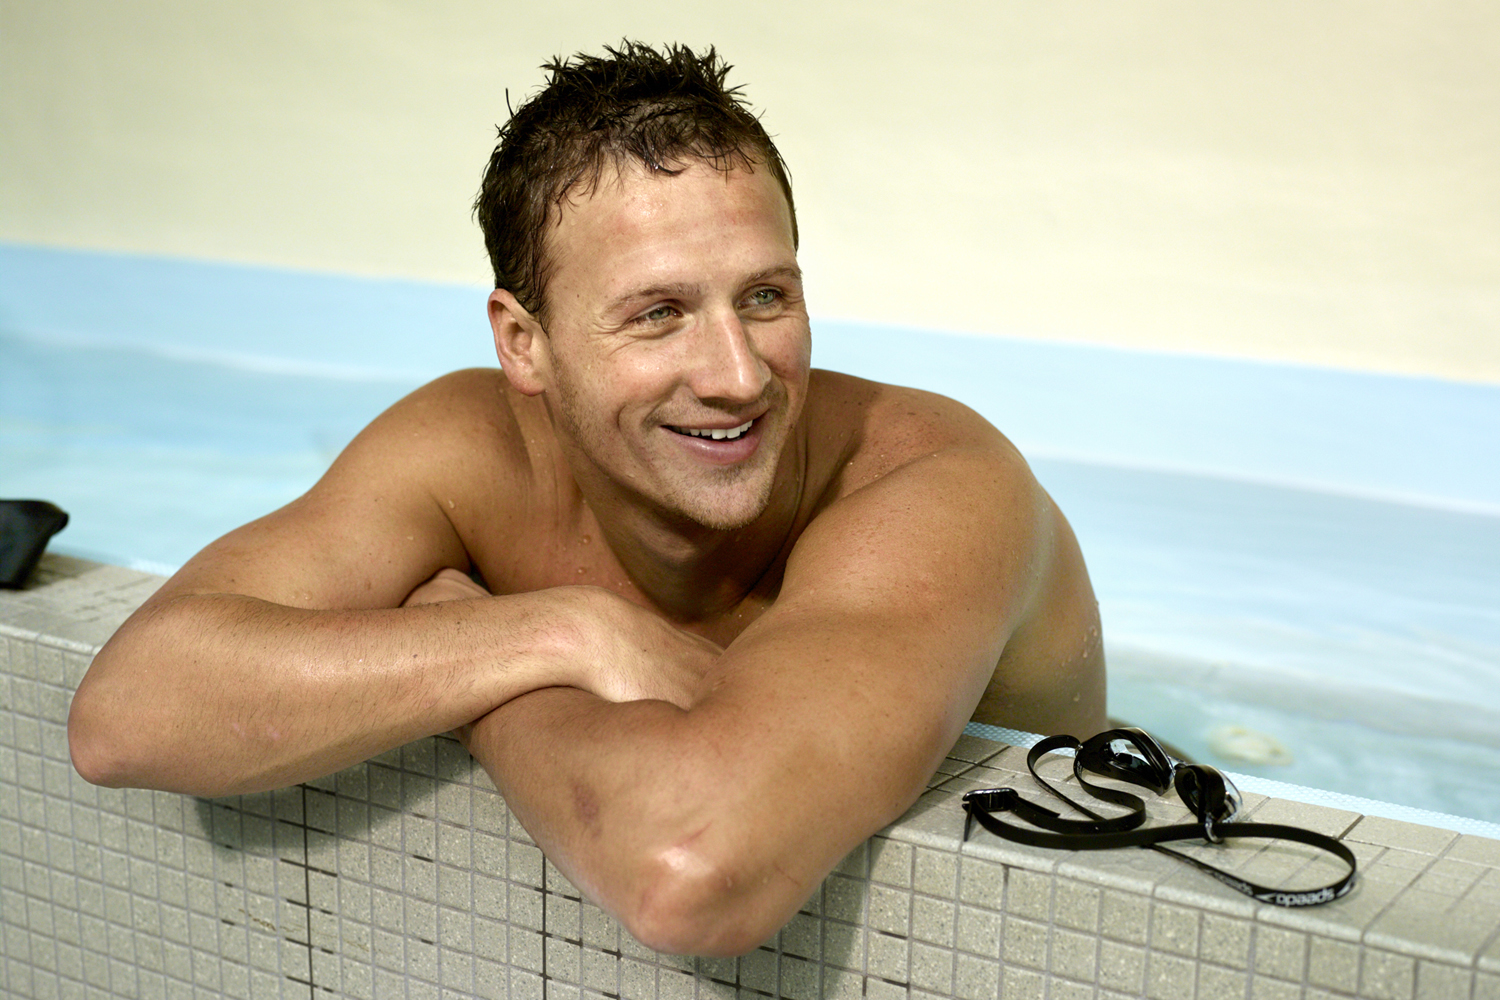 Lochte poolside during a training session for the 2012 Olympics.